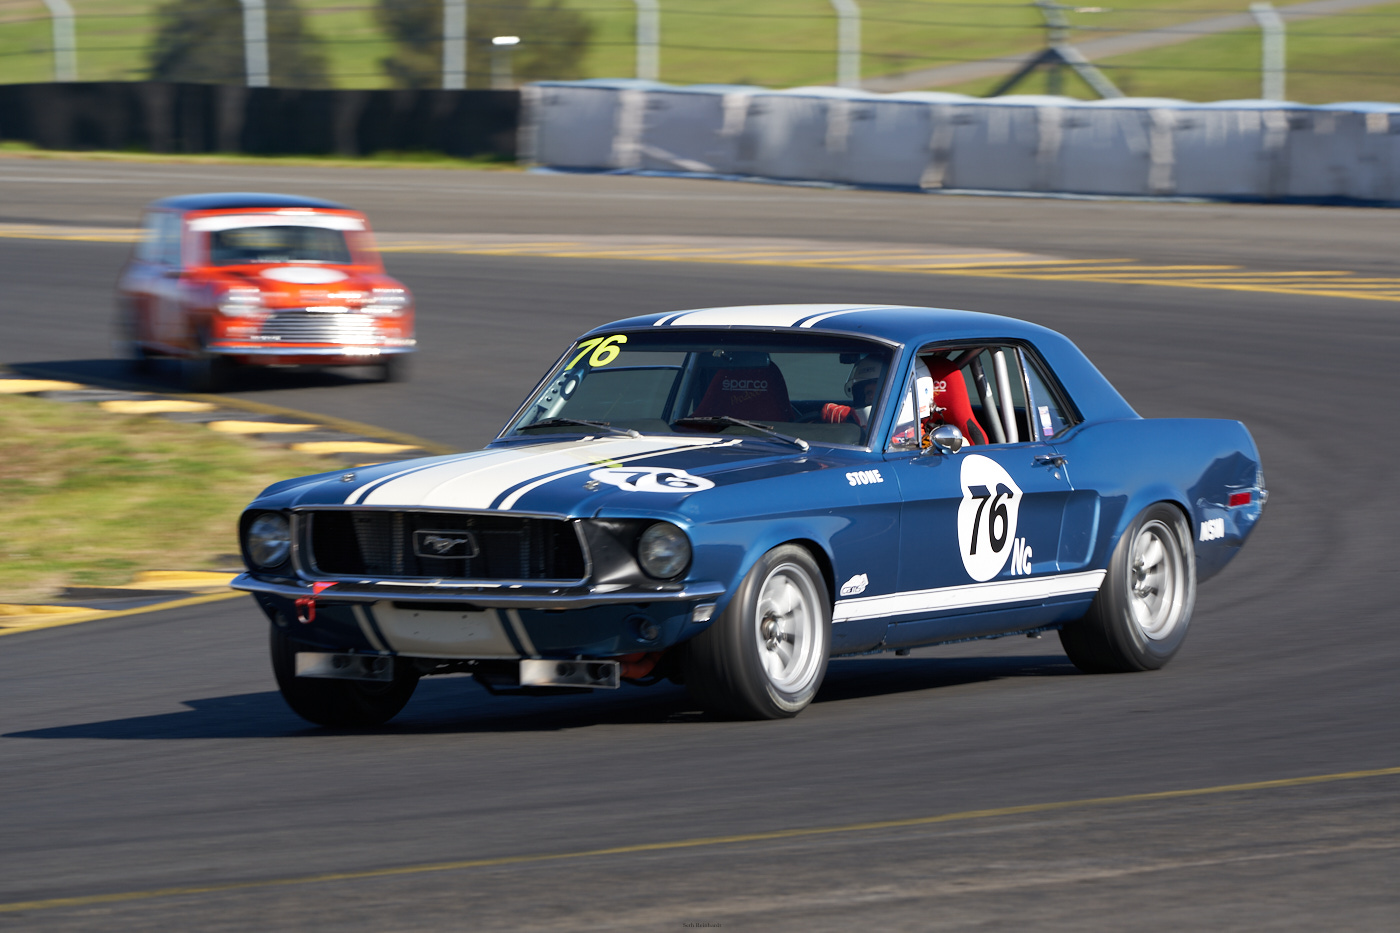 David Stone in the Mustang